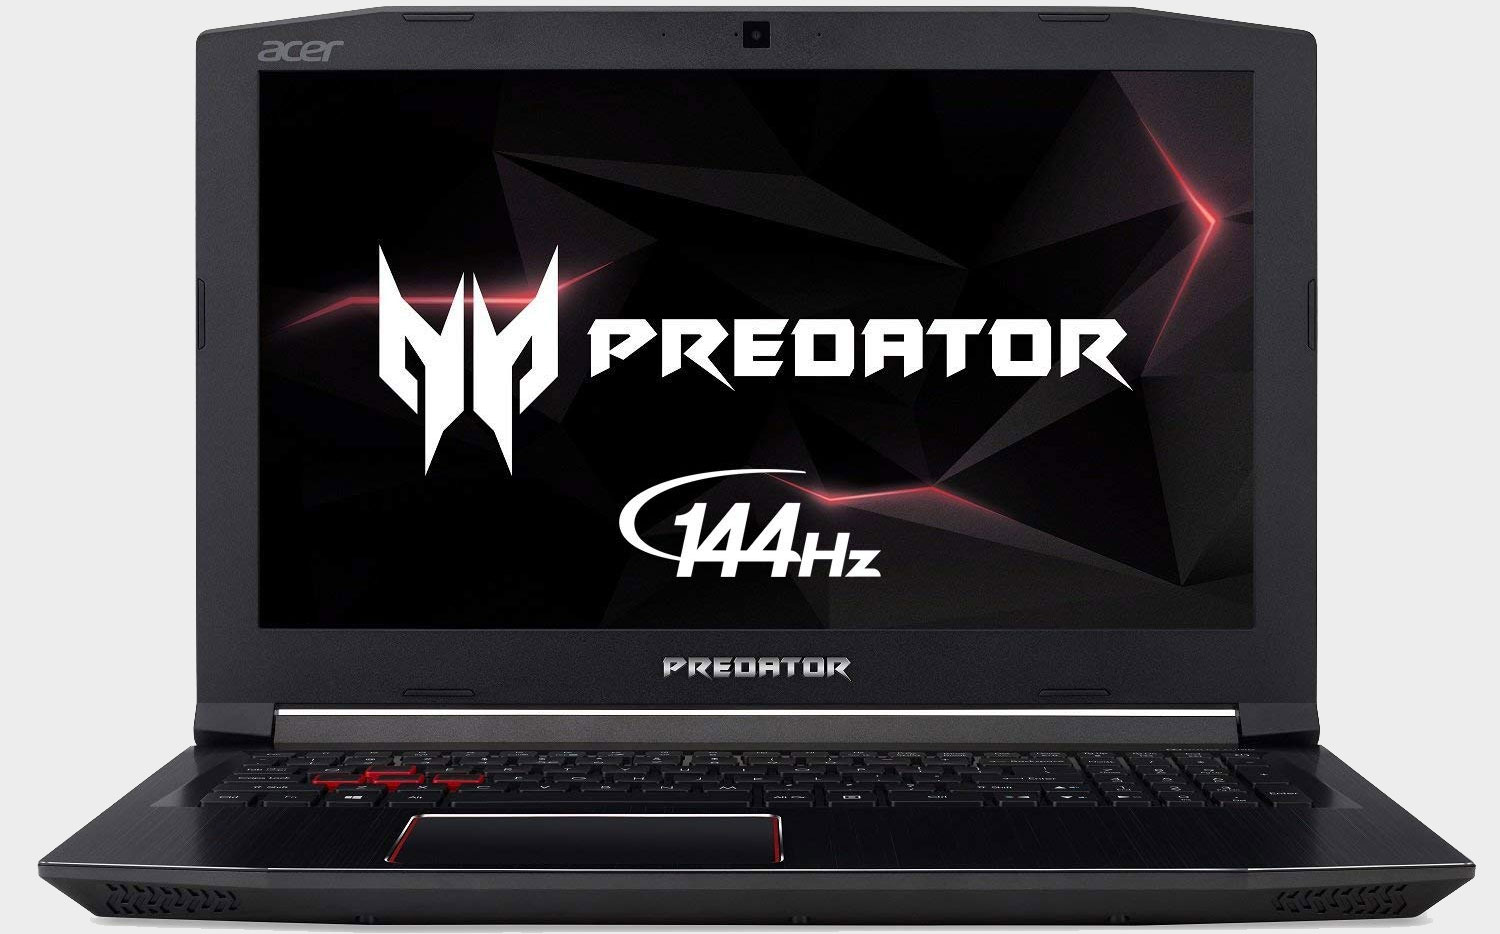 This gaming laptop with a fast 144Hz display and a GTX 1060 is on sale for $999